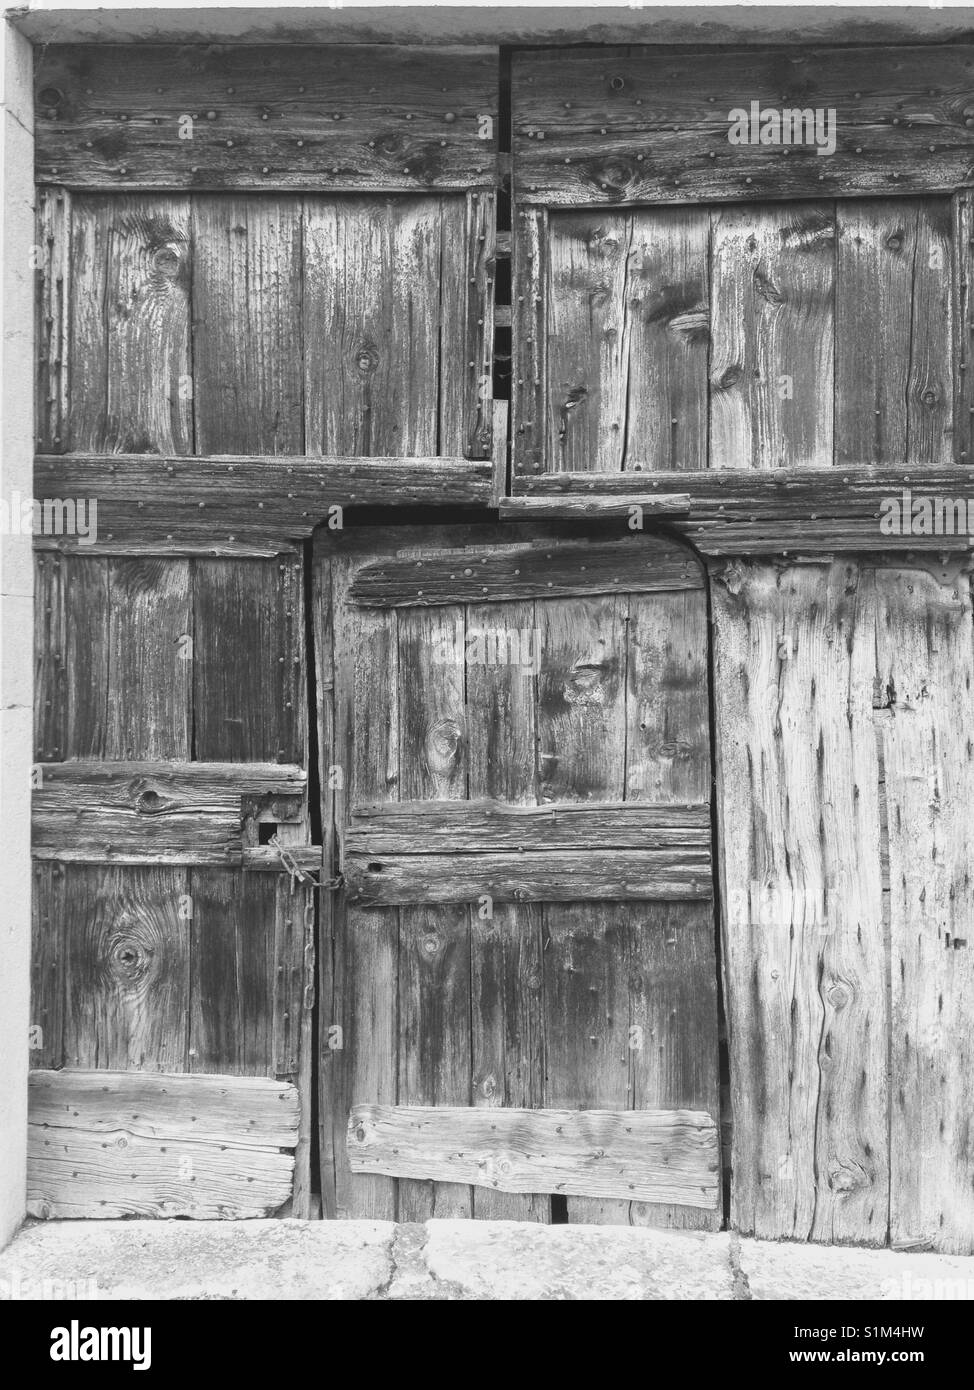 Old Rustic Farm House Barn Door Made From Faded Old Wood Timber